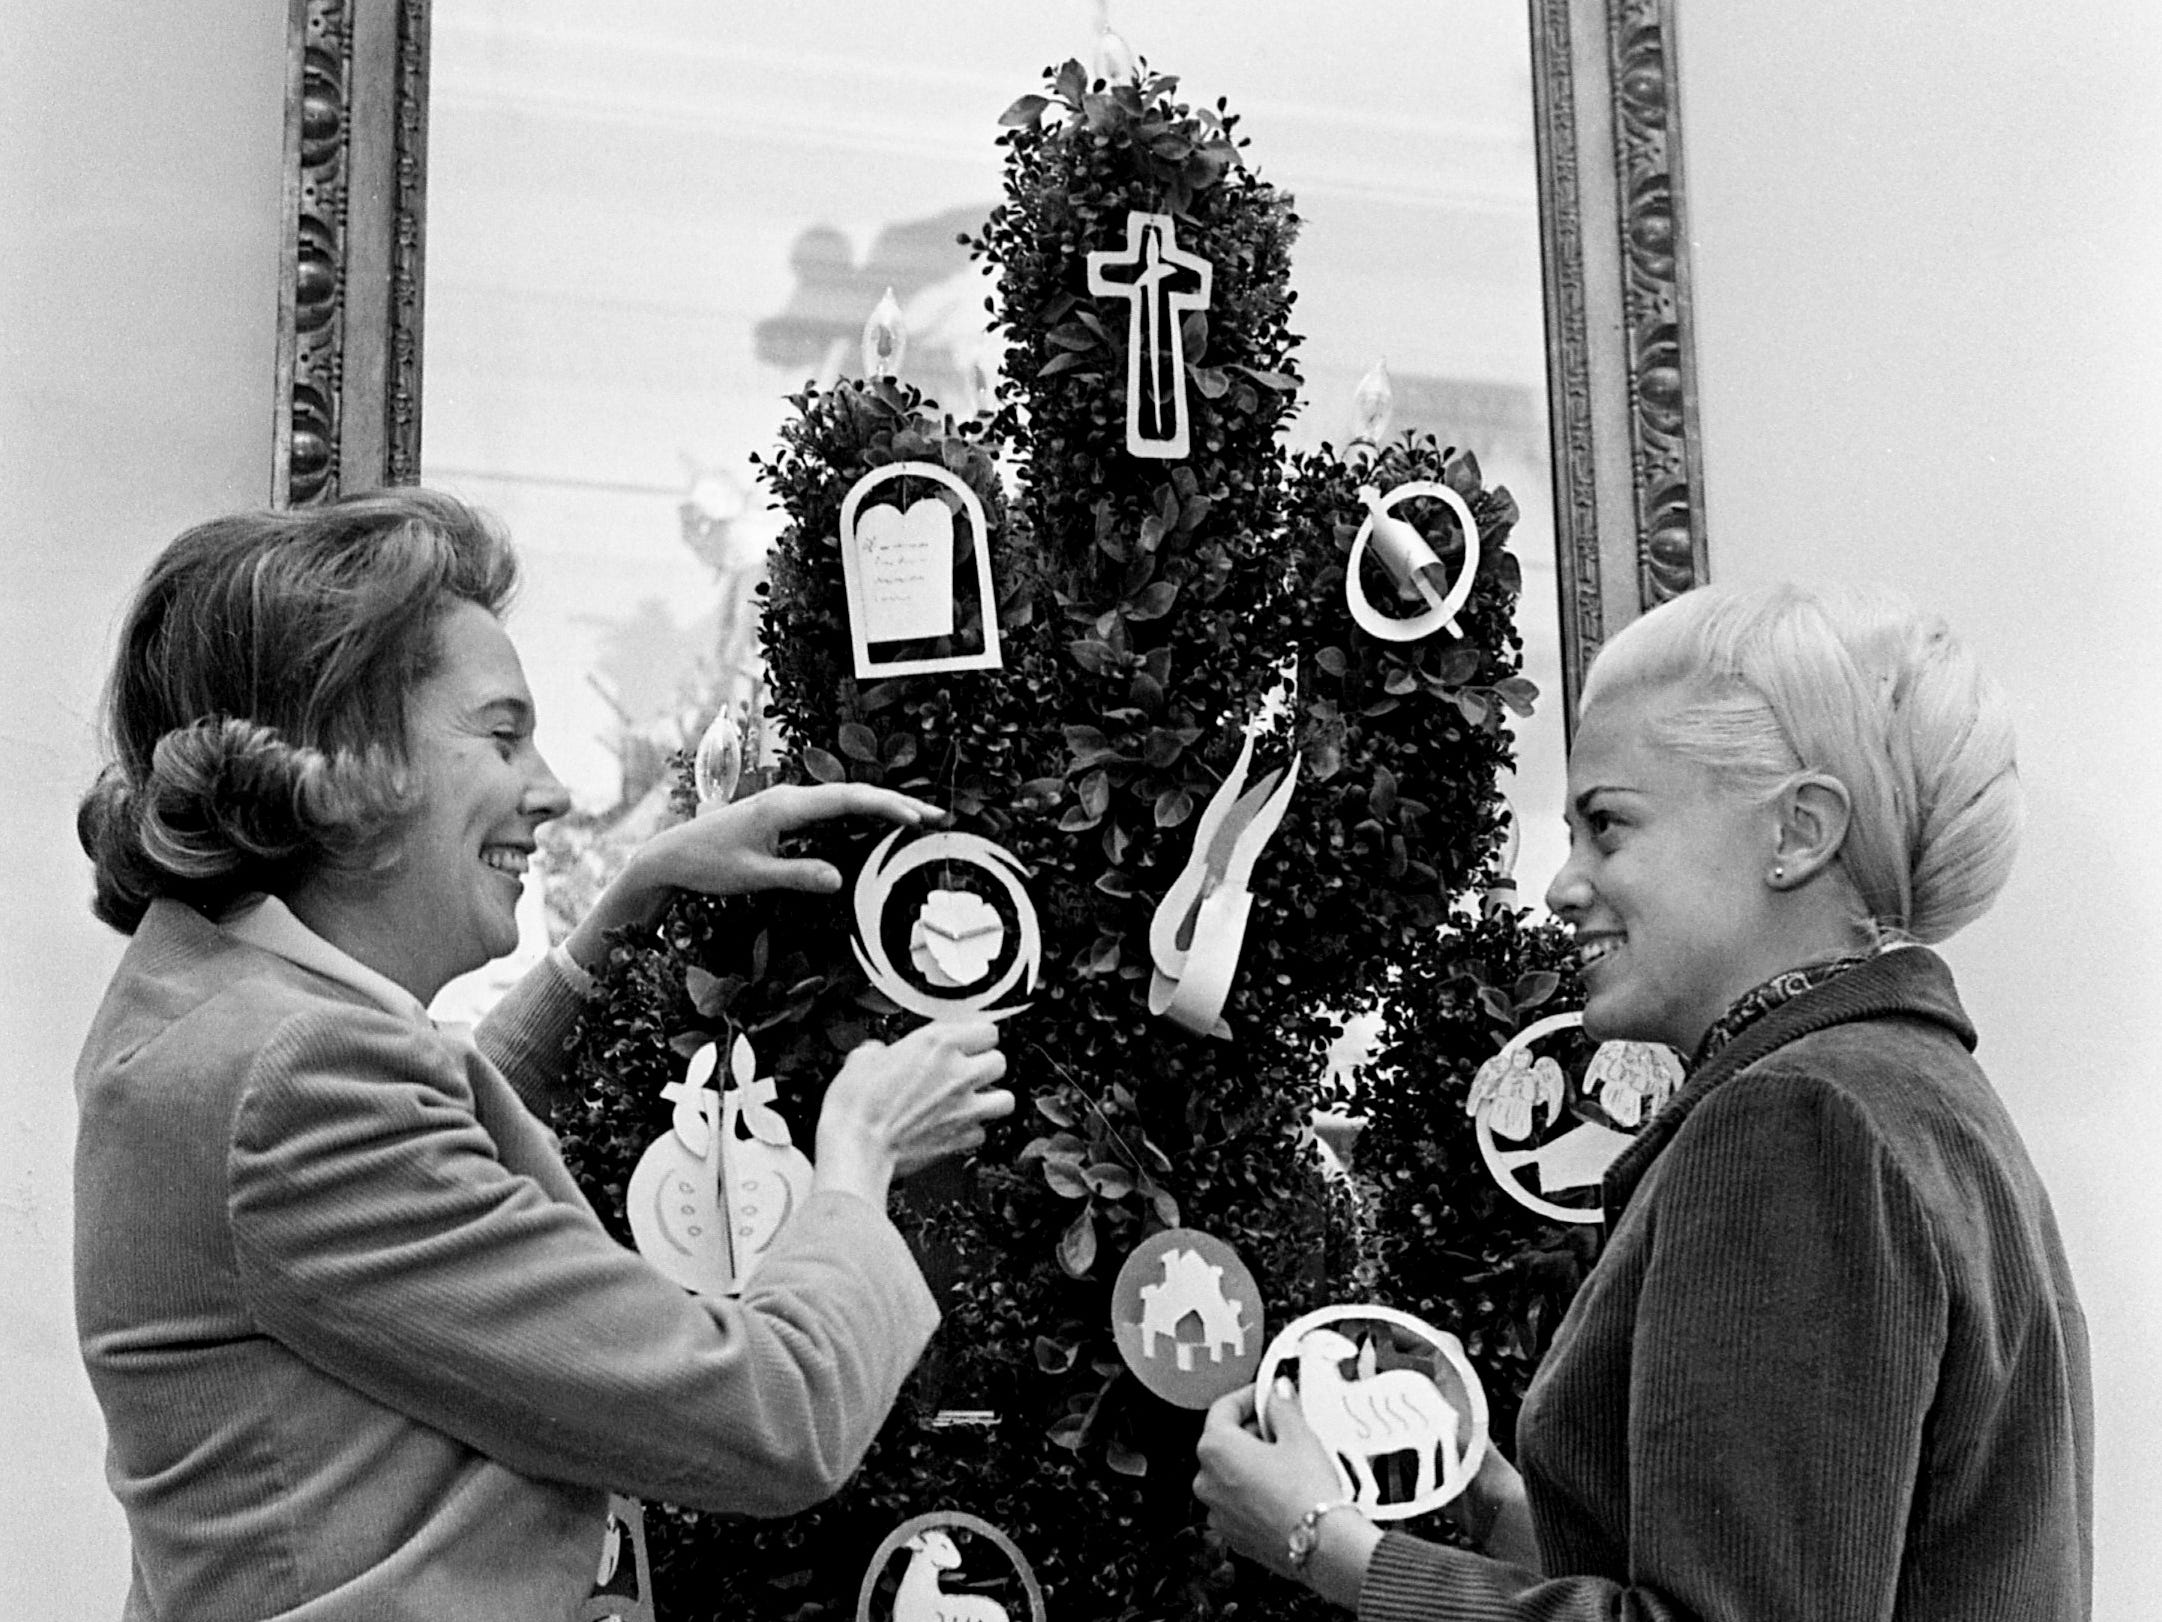 Mrs. William H. Knox, left, a member of the Hillmeade Garden Club, gets assistance in trimming the Tree of Jesse from her visitor from New York, Miss Mary Janicek, Dec. 3, 1968. They are getting the tree ready for the upcoming 4th annual Christmas at Cheekwood event.